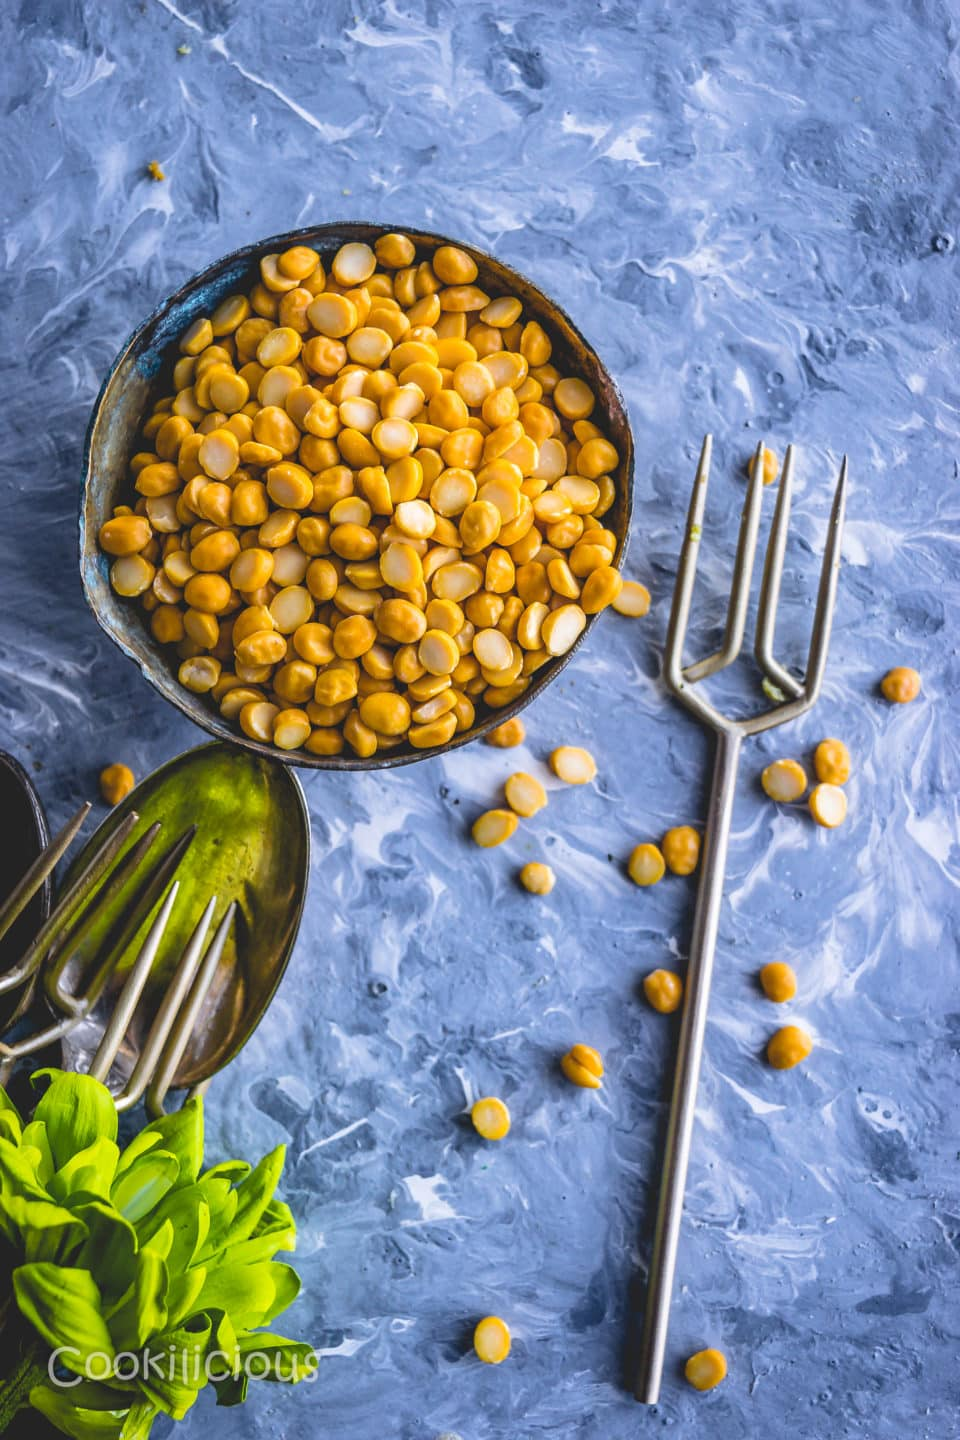 chana dal in a bowl with a fork next to it before soaking it to make Steamed Chana Dal Lentil Bafauri